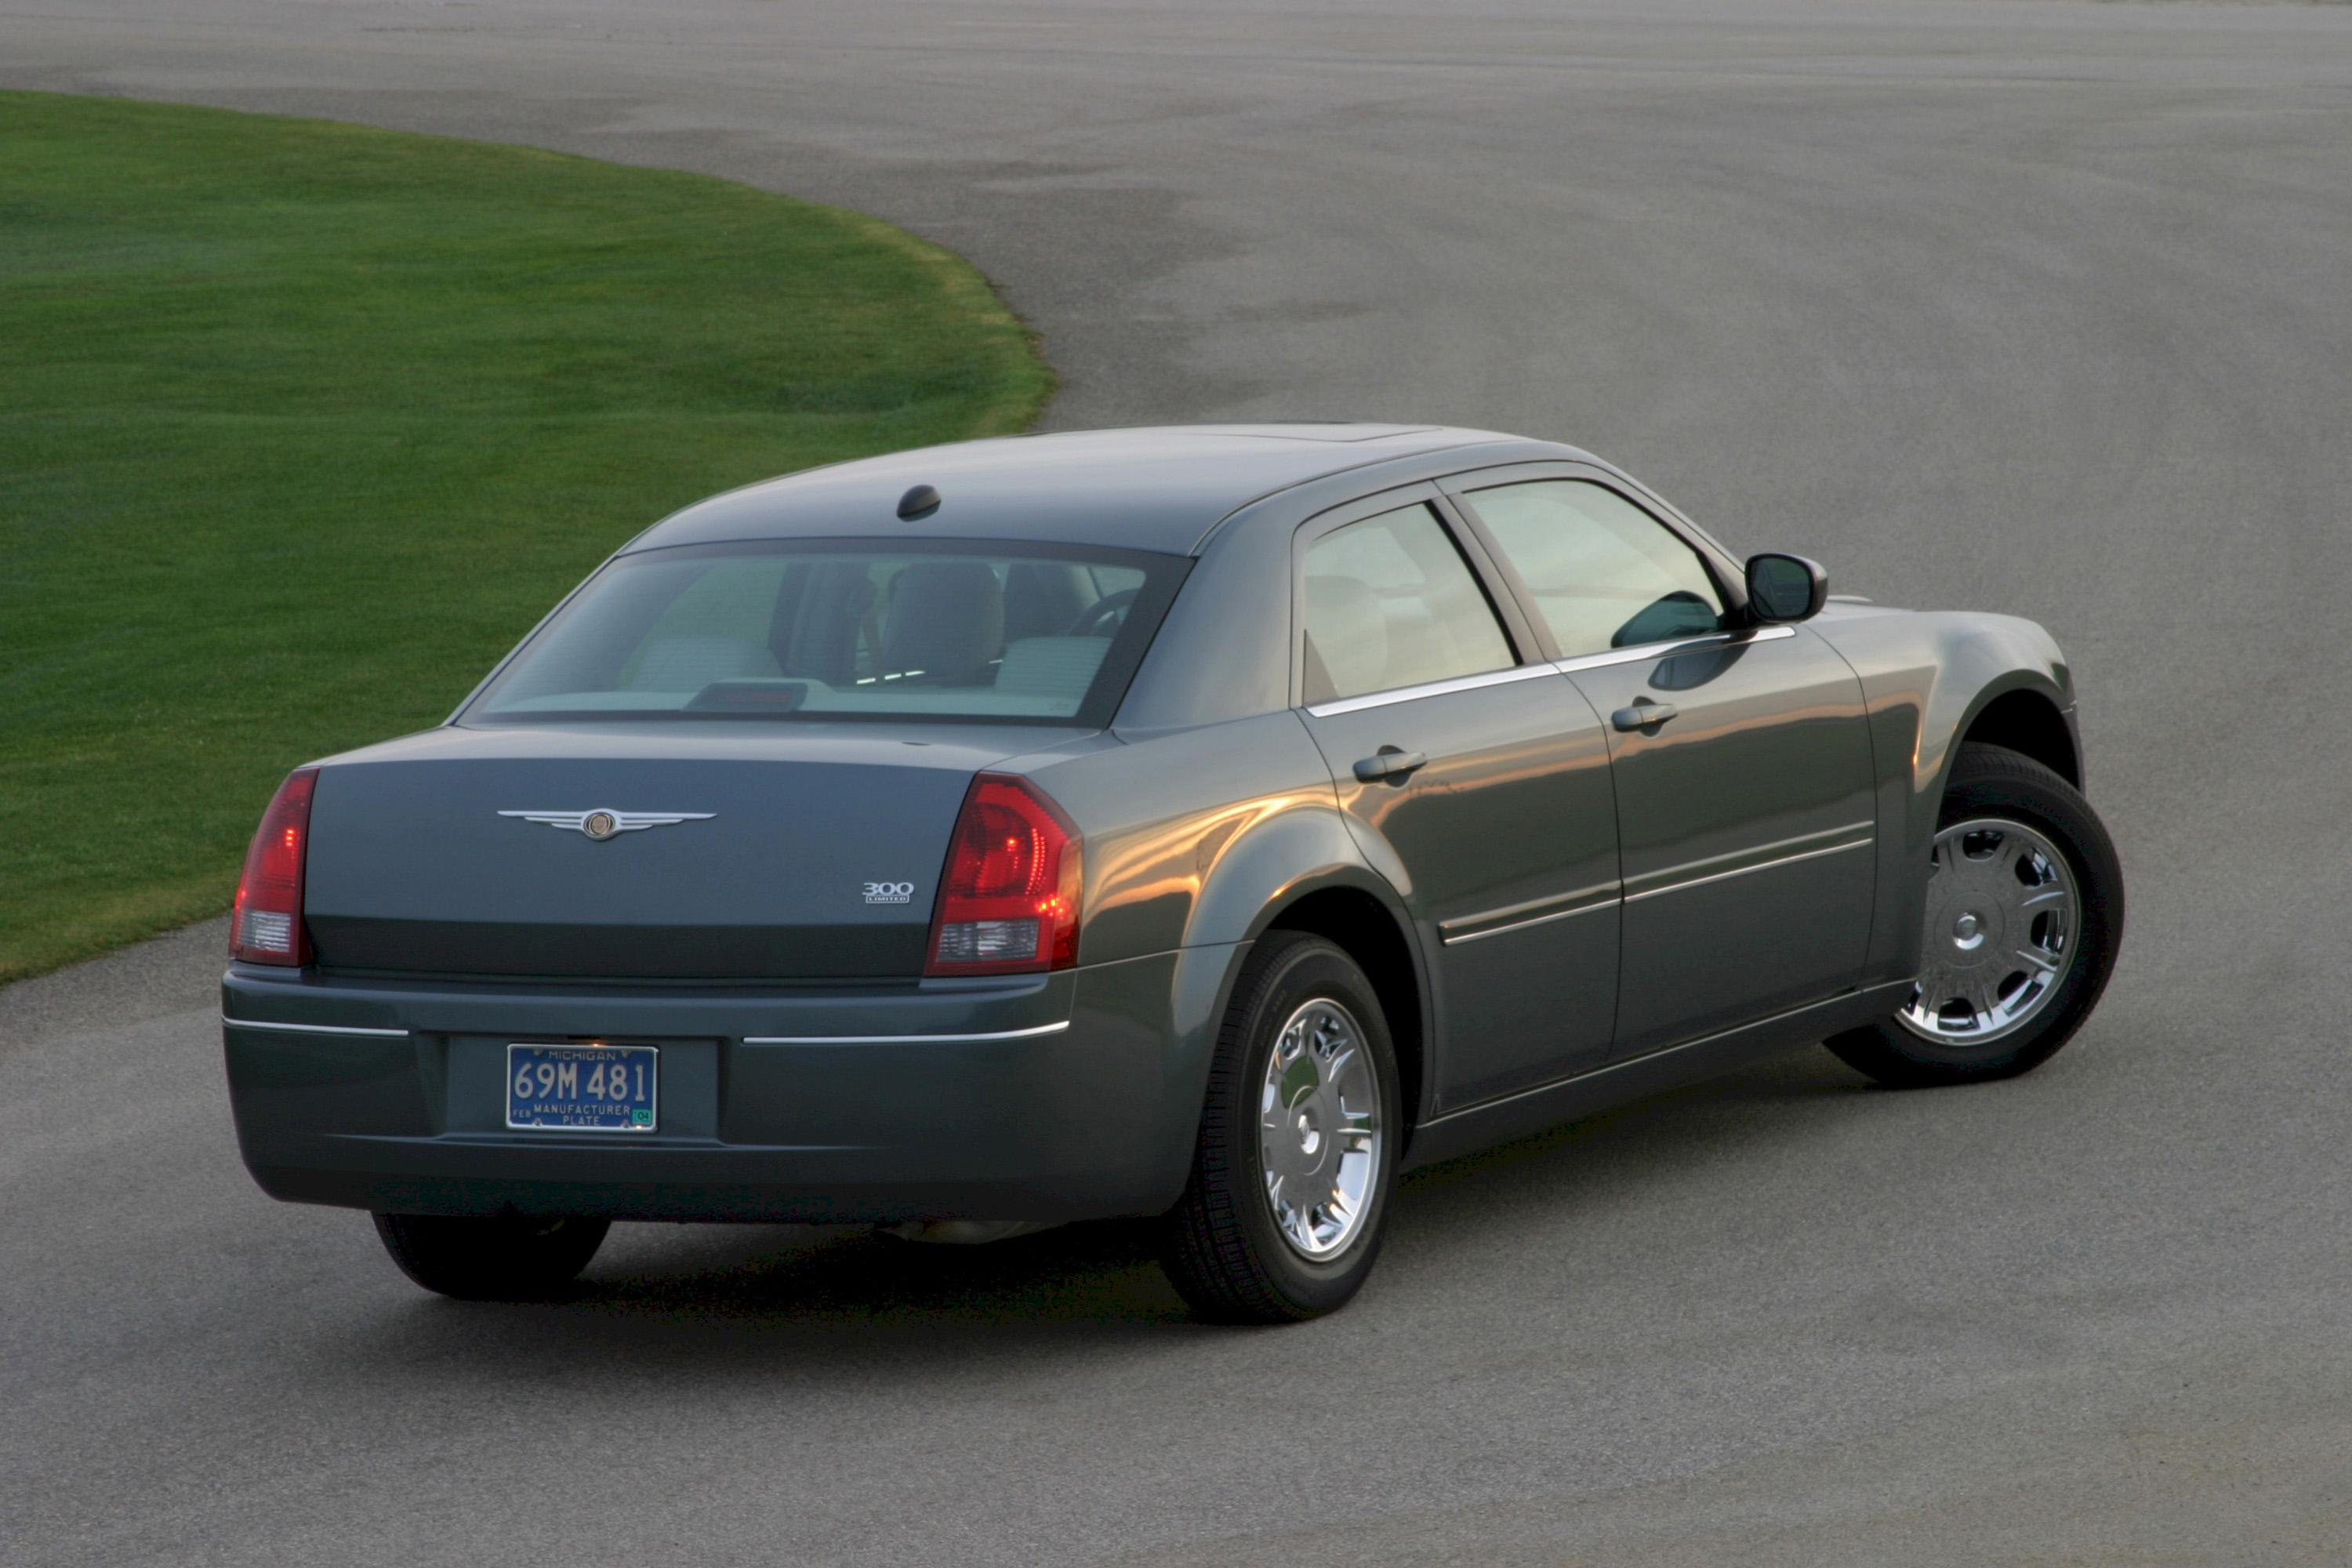 2005 chrysler 300c review top speed. Black Bedroom Furniture Sets. Home Design Ideas